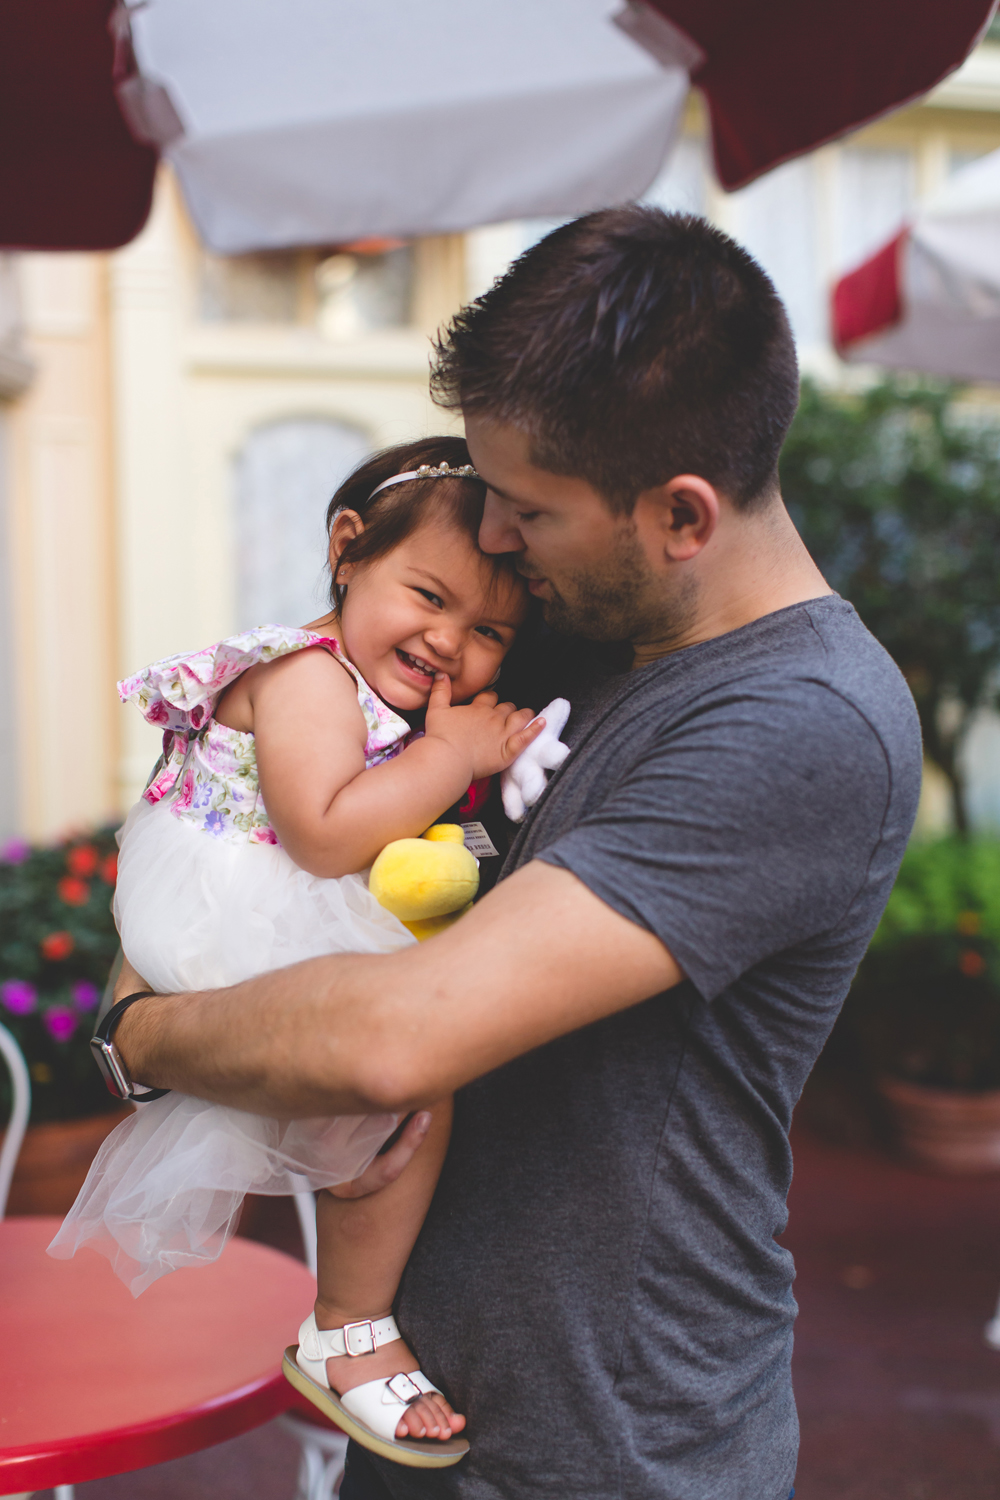 Jaime DiOrio - Disney Family Session - Orlando Family Photographer - Magic Kingdom Family Session - Documentary Photographer (18).jpg